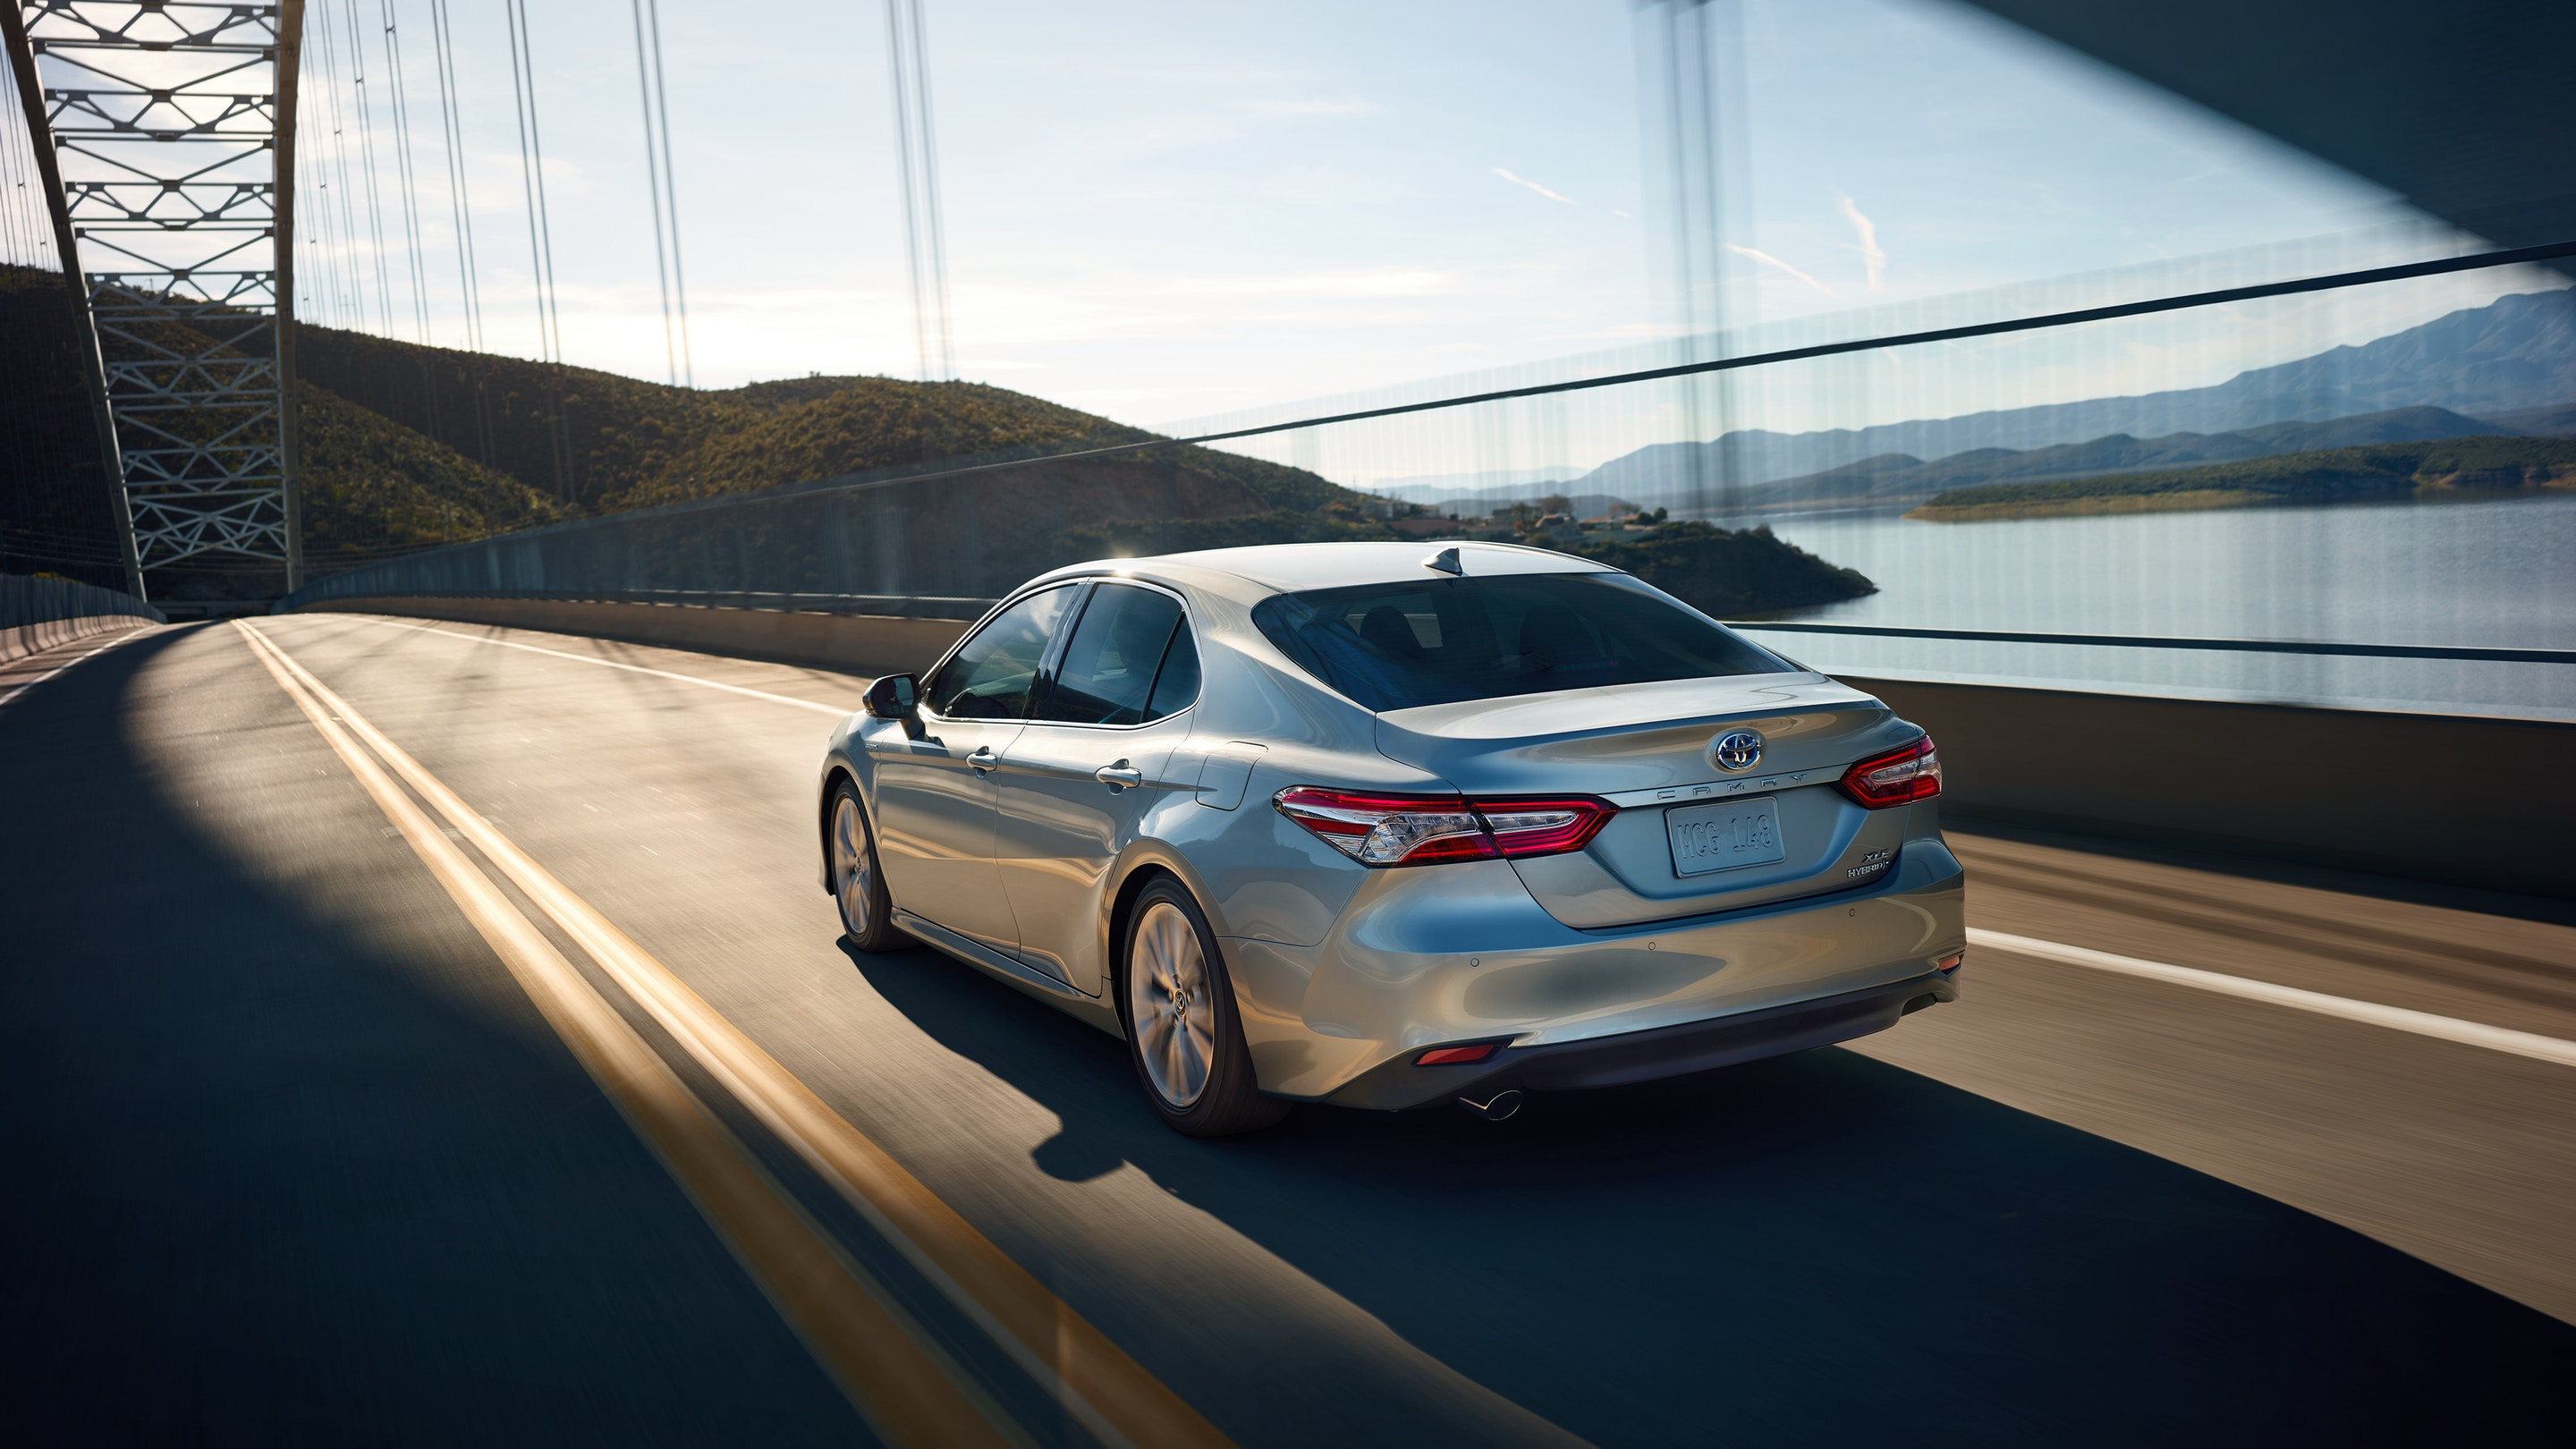 2019 Toyota Camry for Sale near Palo Alto, CA